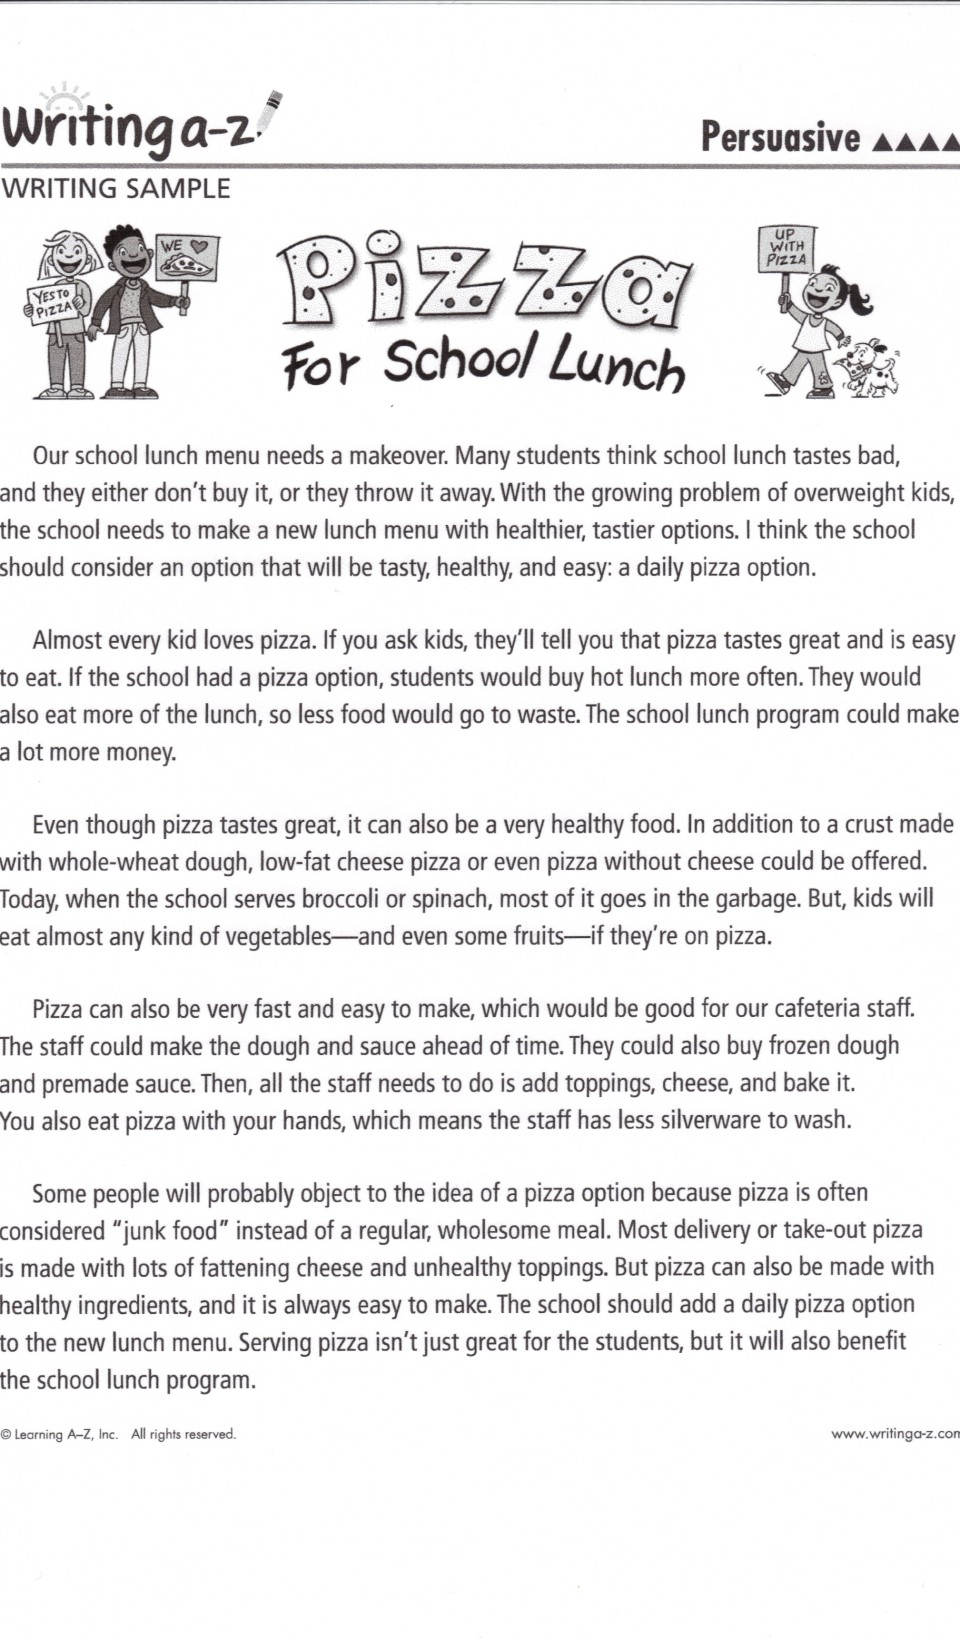 004 Essay Example 20102093b343b4120pm20fluent Opinion About Fast Unbelievable Food Short Is A Good Alternative To Cooking For Yourself Restaurants 960